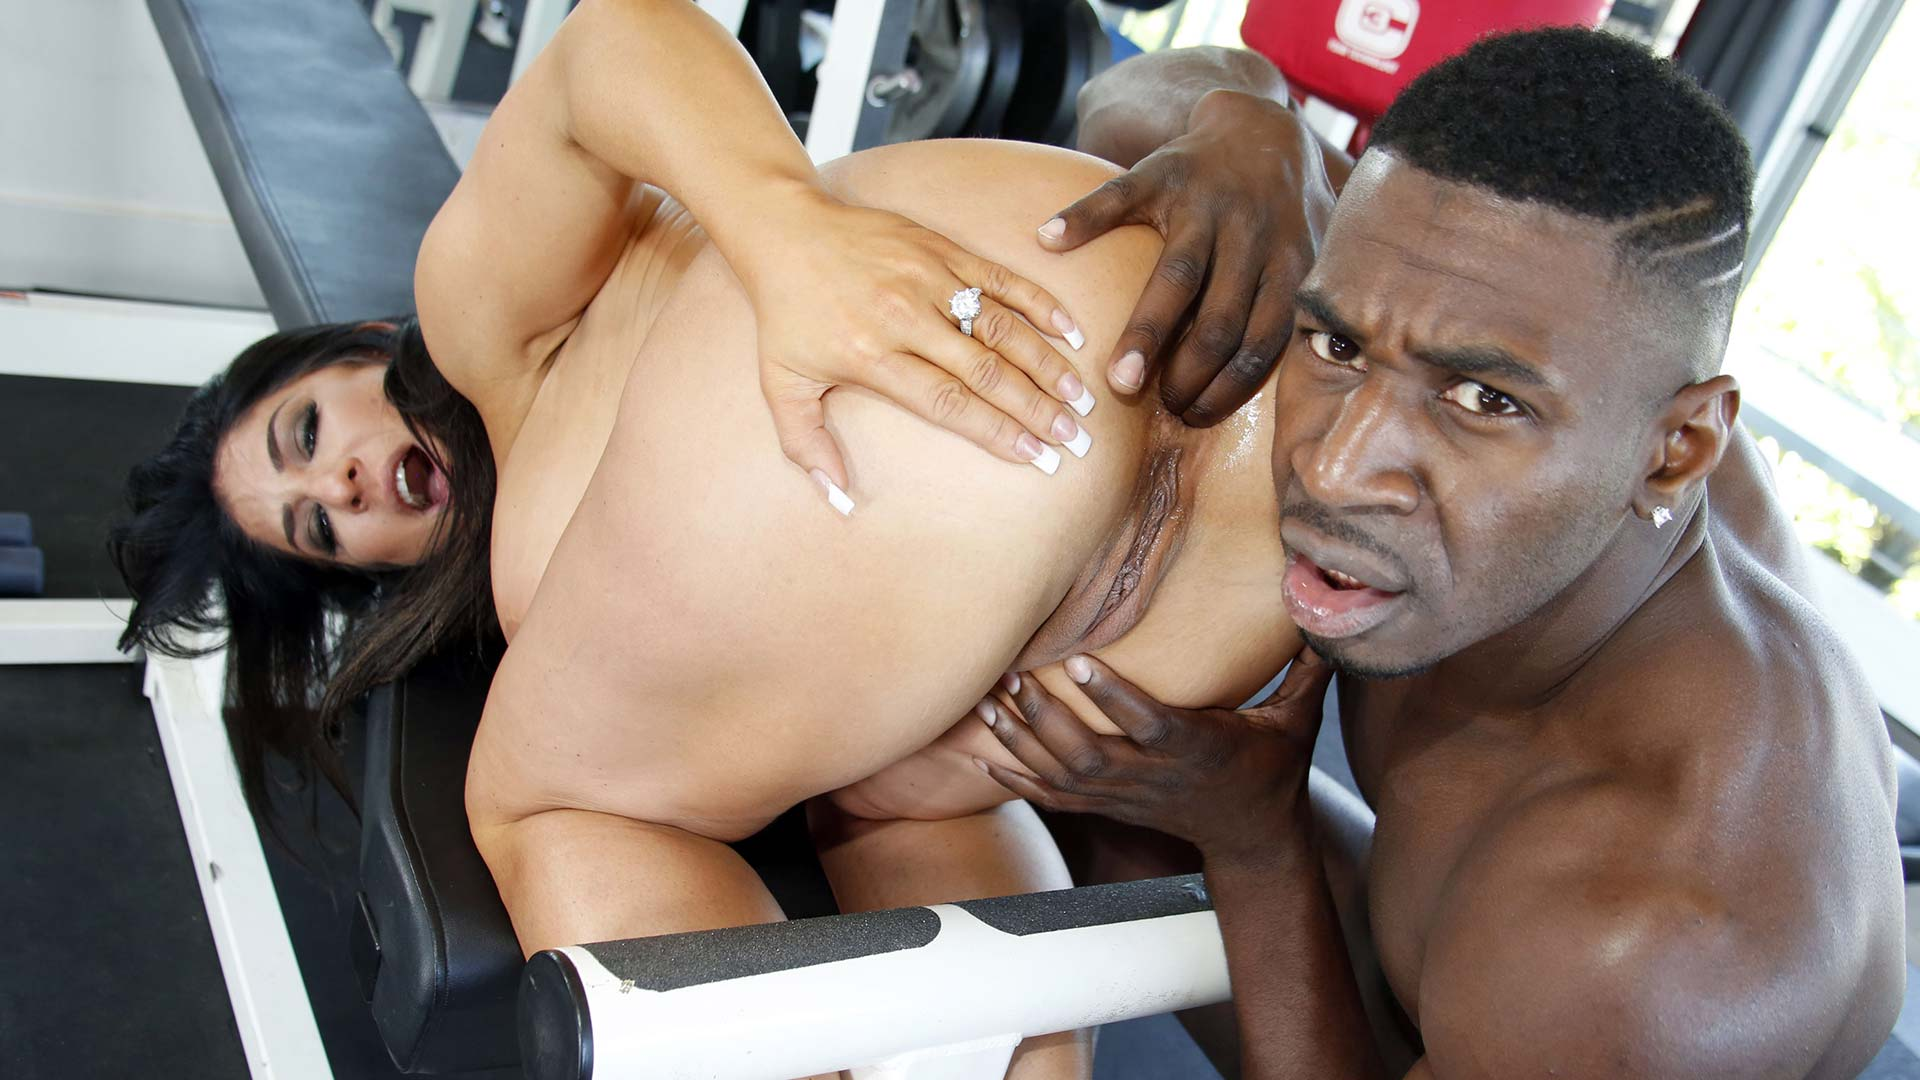 Gloryhole Raven Hart Interracial Porn